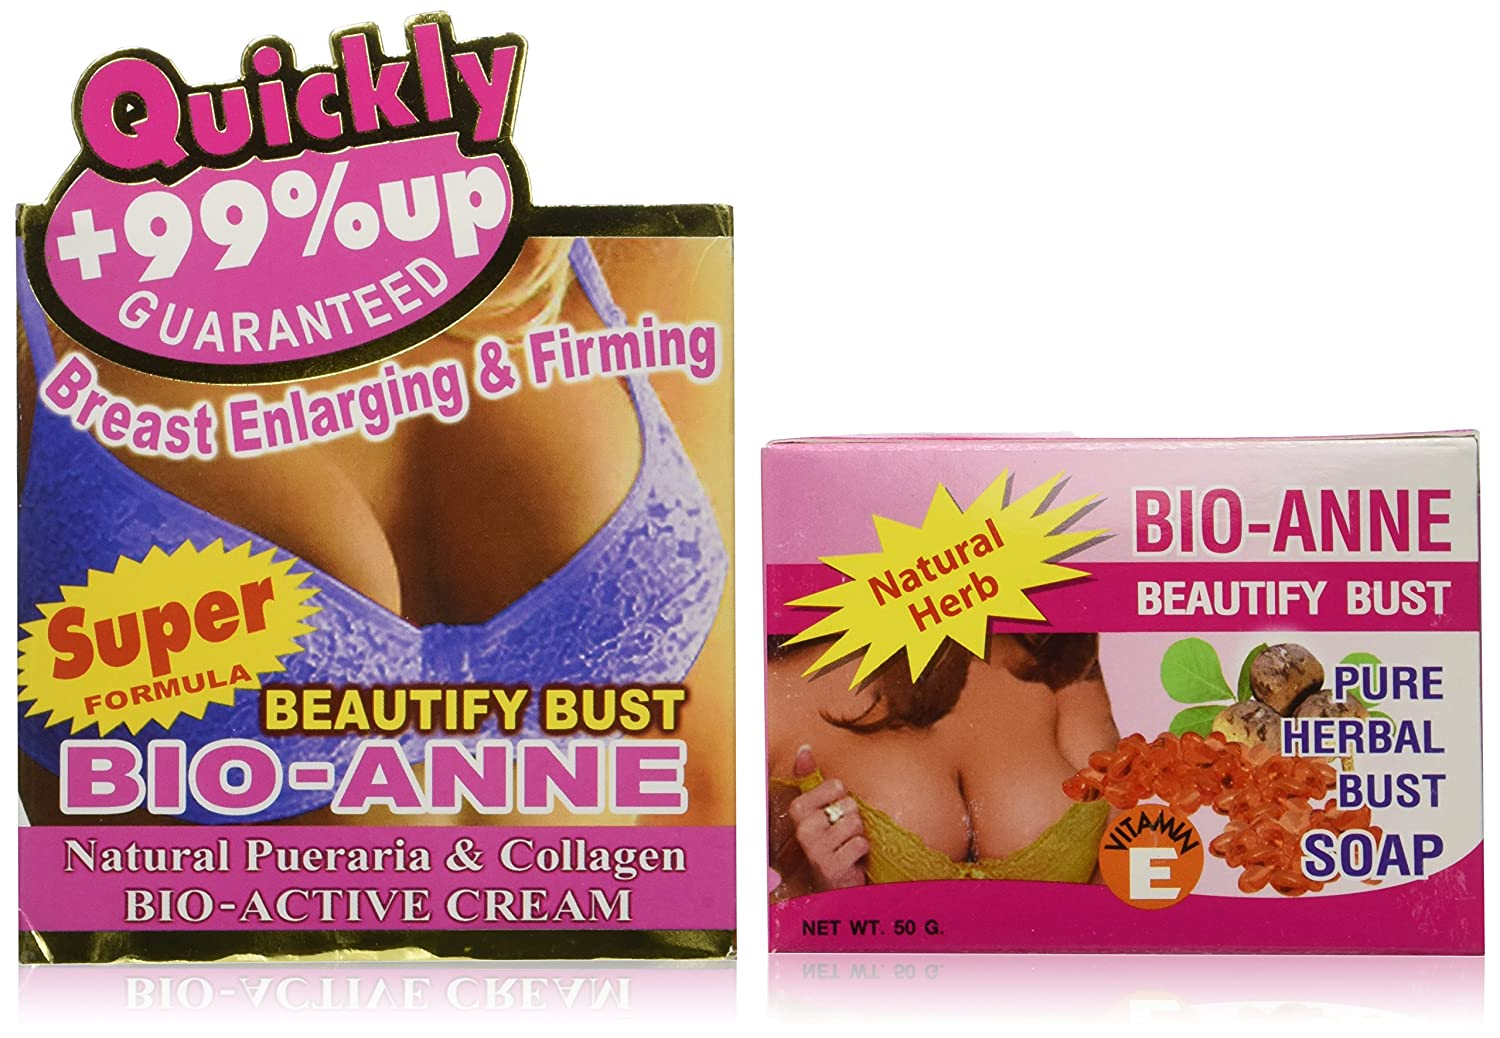 Quick Breast Bust Enlargement Cream - Works Guaranteed (1 Box & Free gift)  : Body Gels And Creams : Beauty